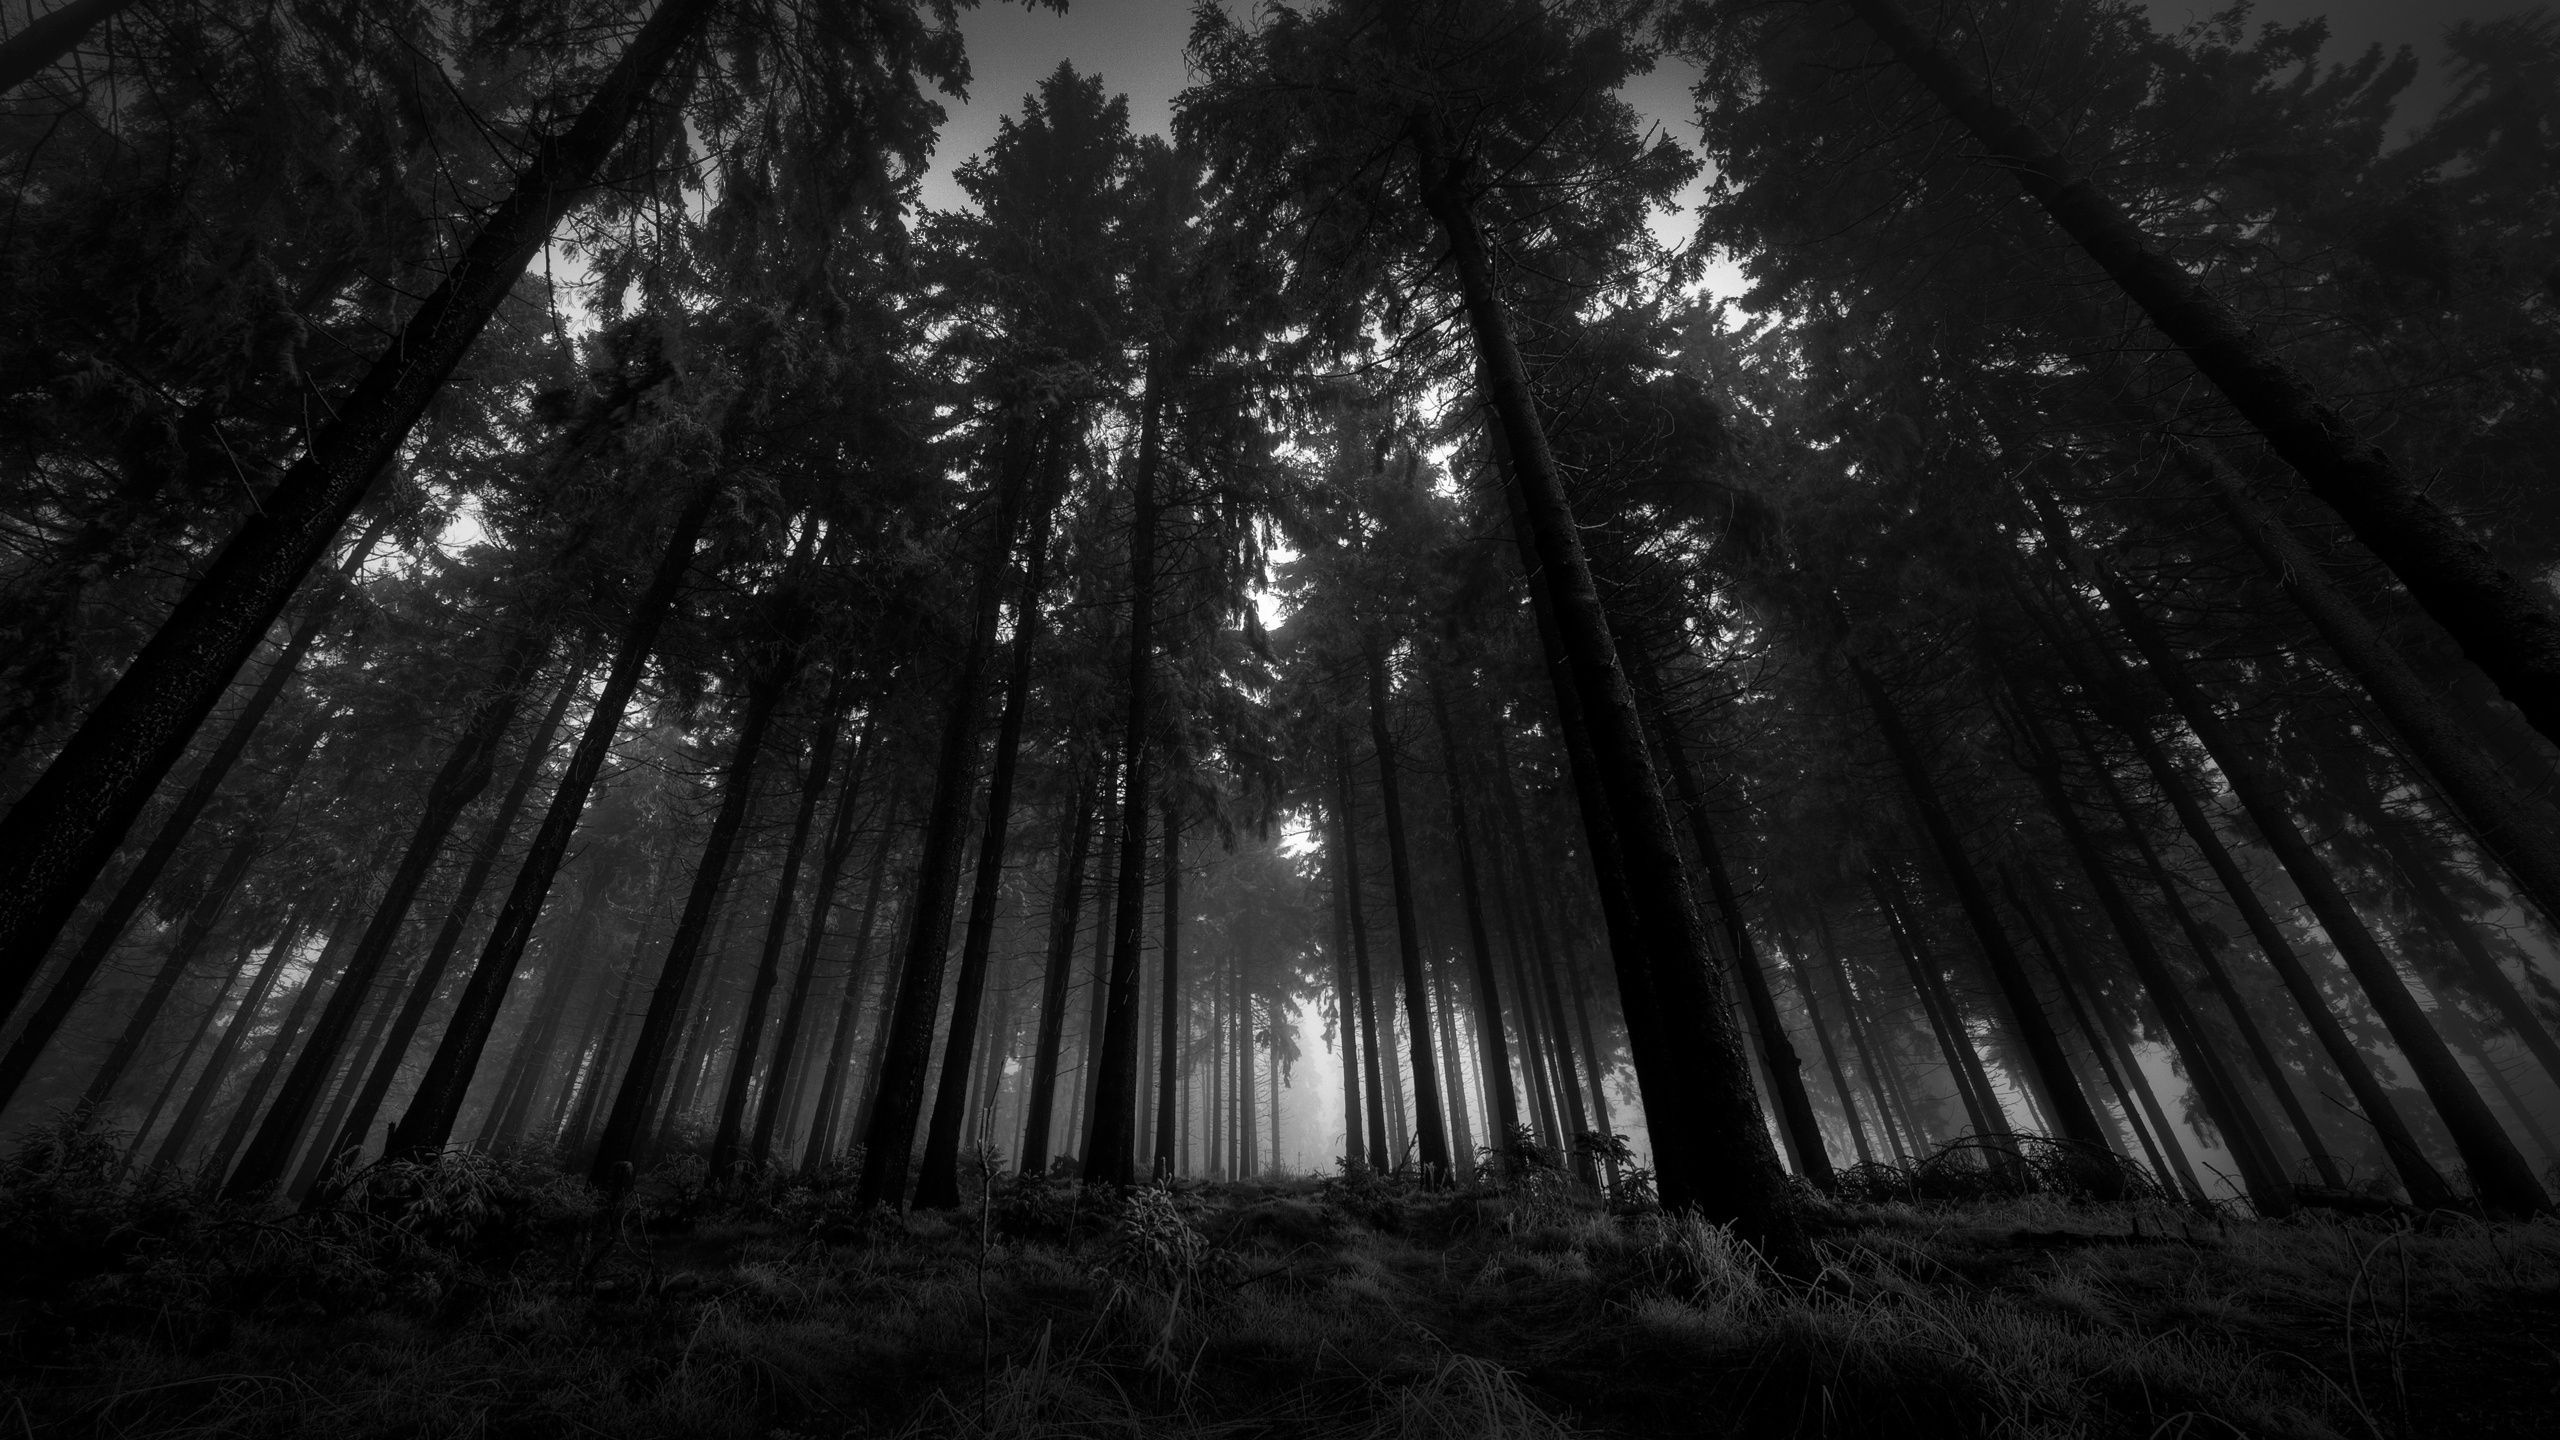 Download Dark Forest Wallpapers For Iphone For Iphone Pc Desktop Android Or Mac 1080p Hd Pattern Dark Wood Wallpaper Dark Wallpaper Forest Wallpaper